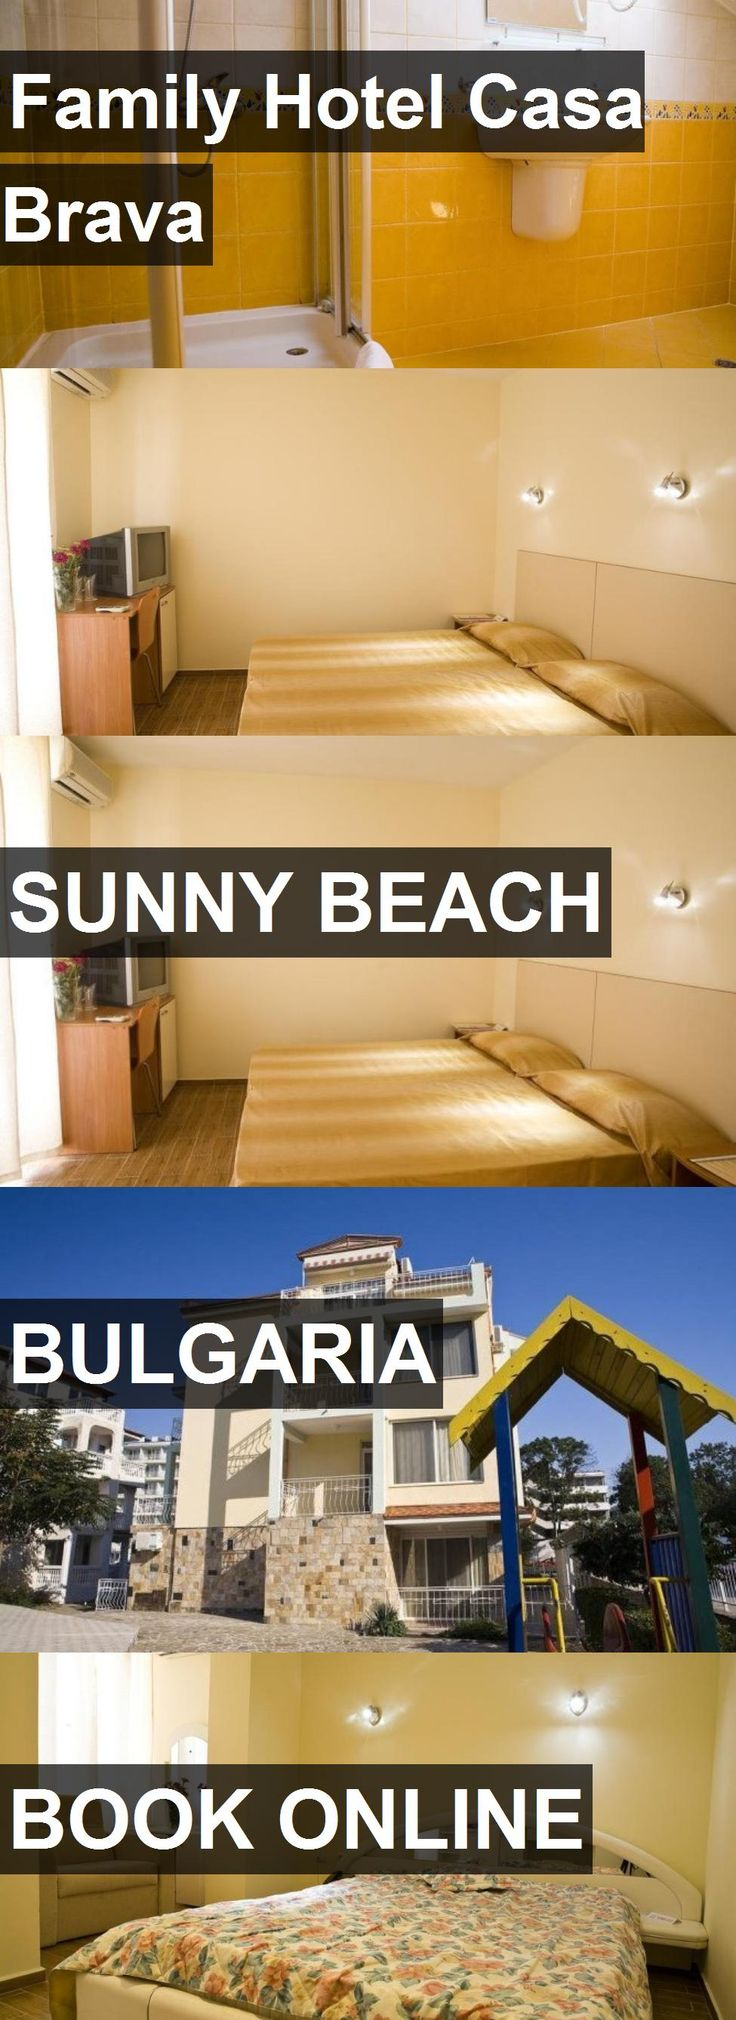 Hotel Family Hotel Casa Brava in Sunny Beach, Bulgaria. For more information, photos, reviews and best prices please follow the link. #Bulgaria #SunnyBeach #FamilyHotelCasaBrava #hotel #travel #vacation